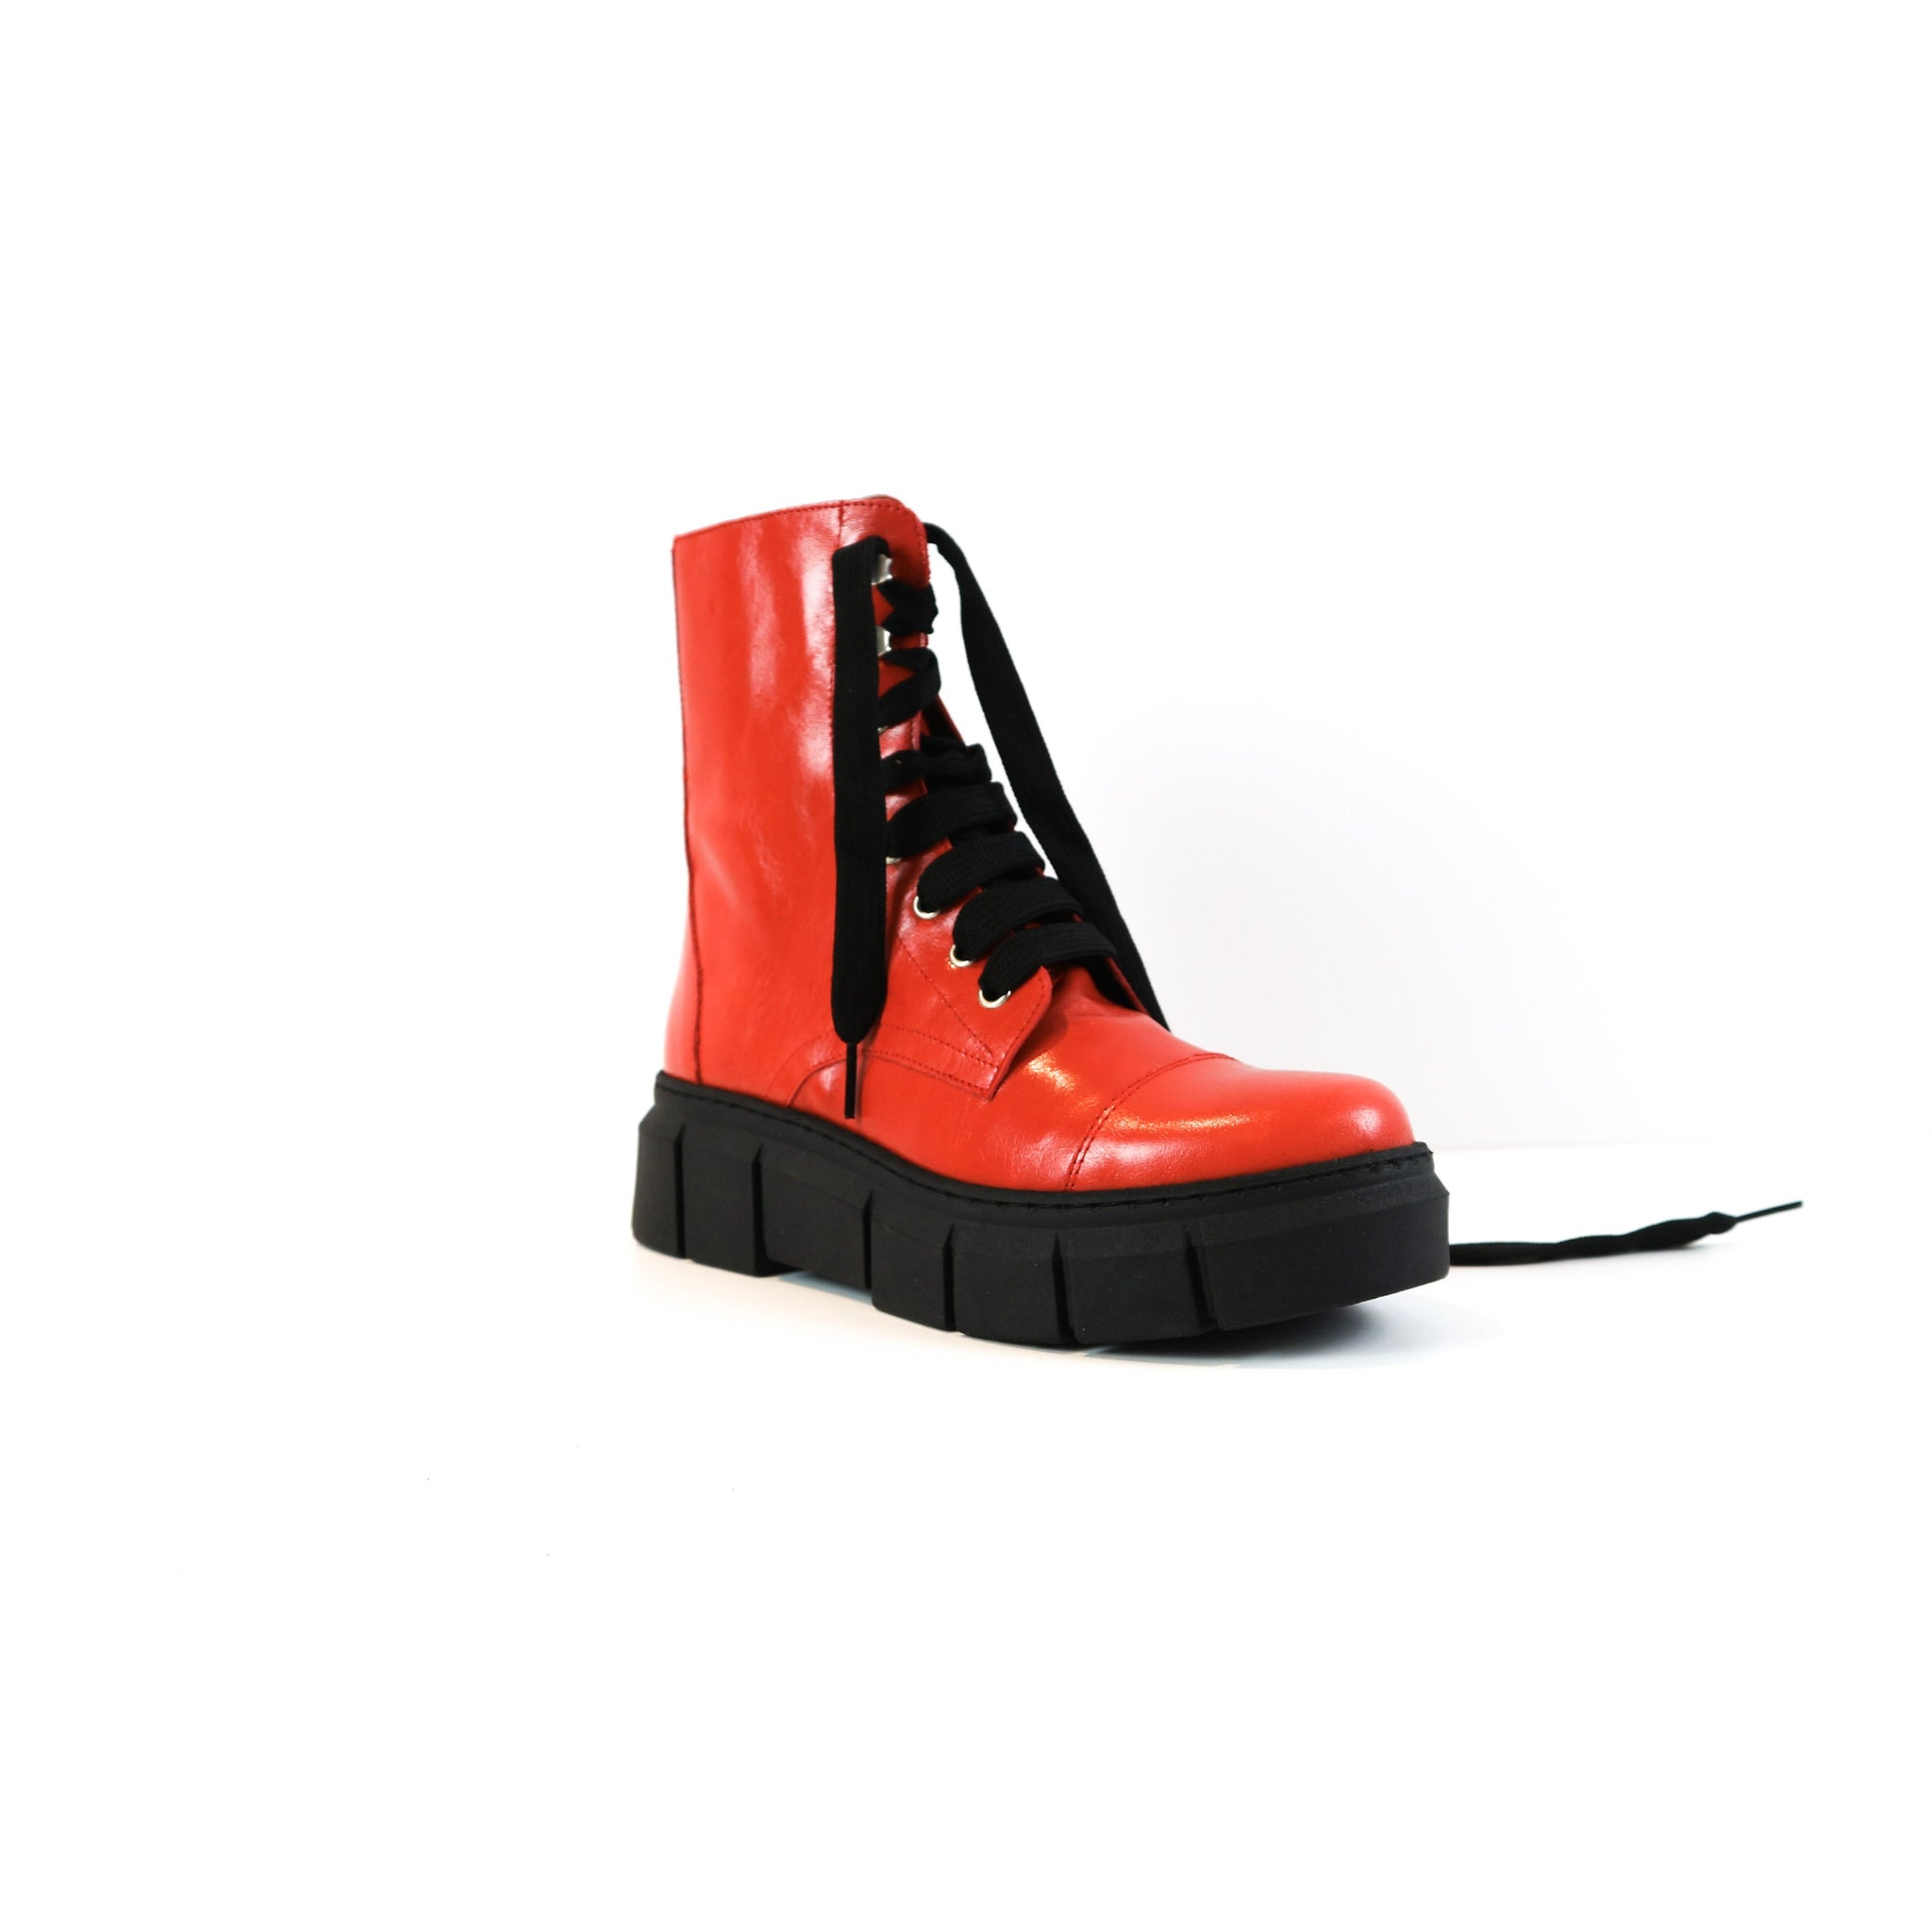 ROXY | Funky Red Biker Boots - TrystShoes